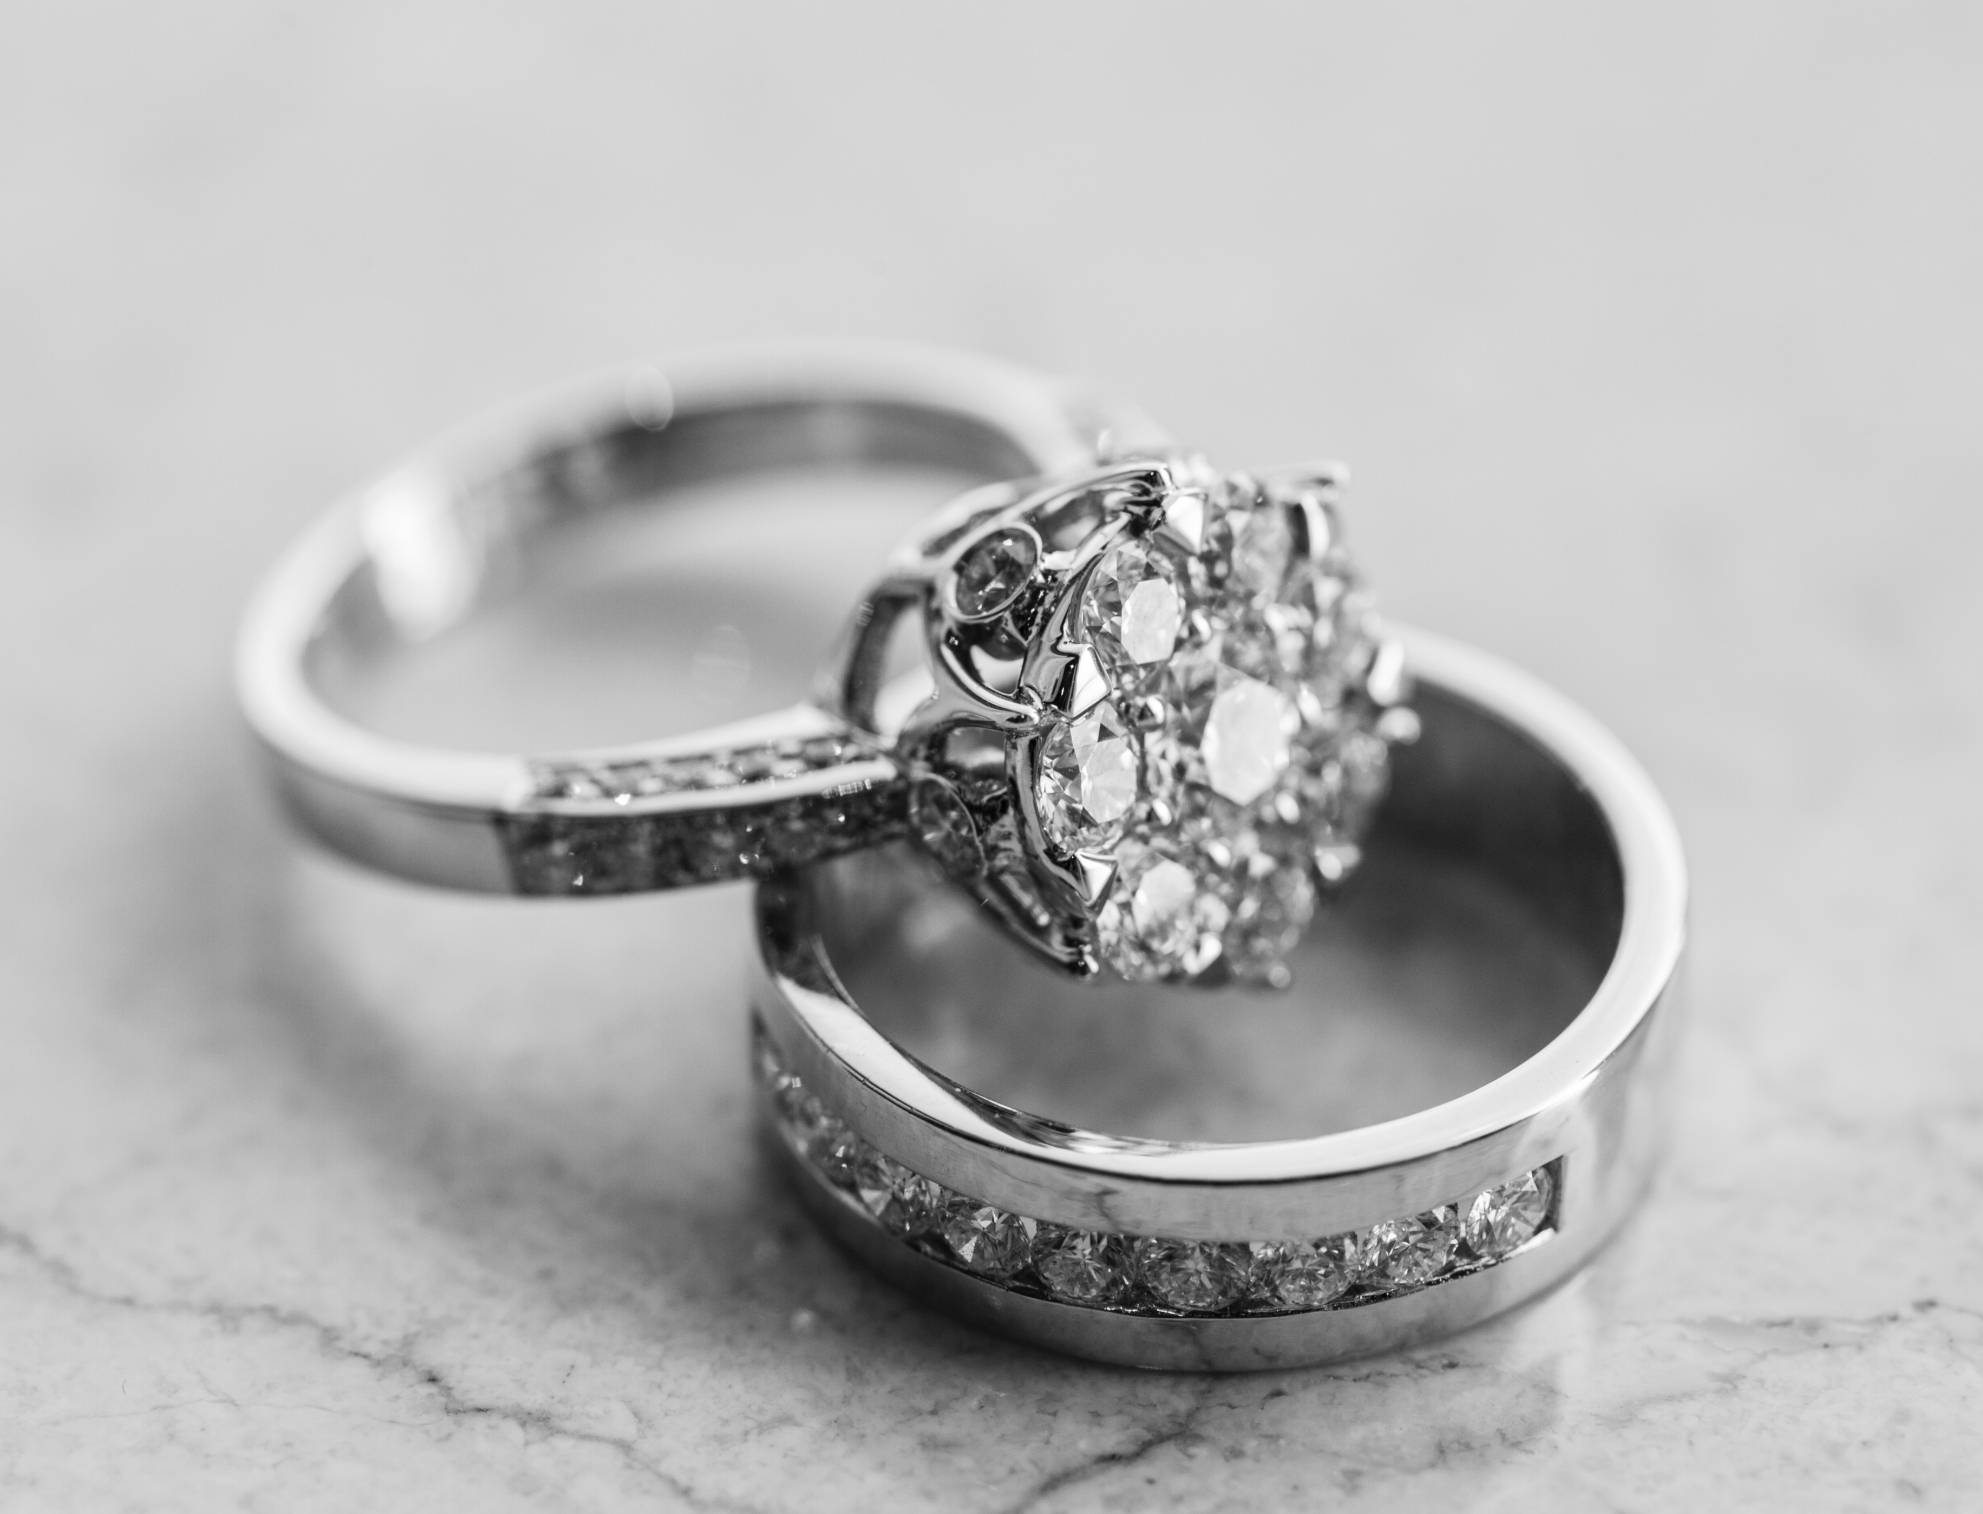 Tying The Knot On Engagement Ring Insurance For Tie The Knot Engagement Rings (View 14 of 15)